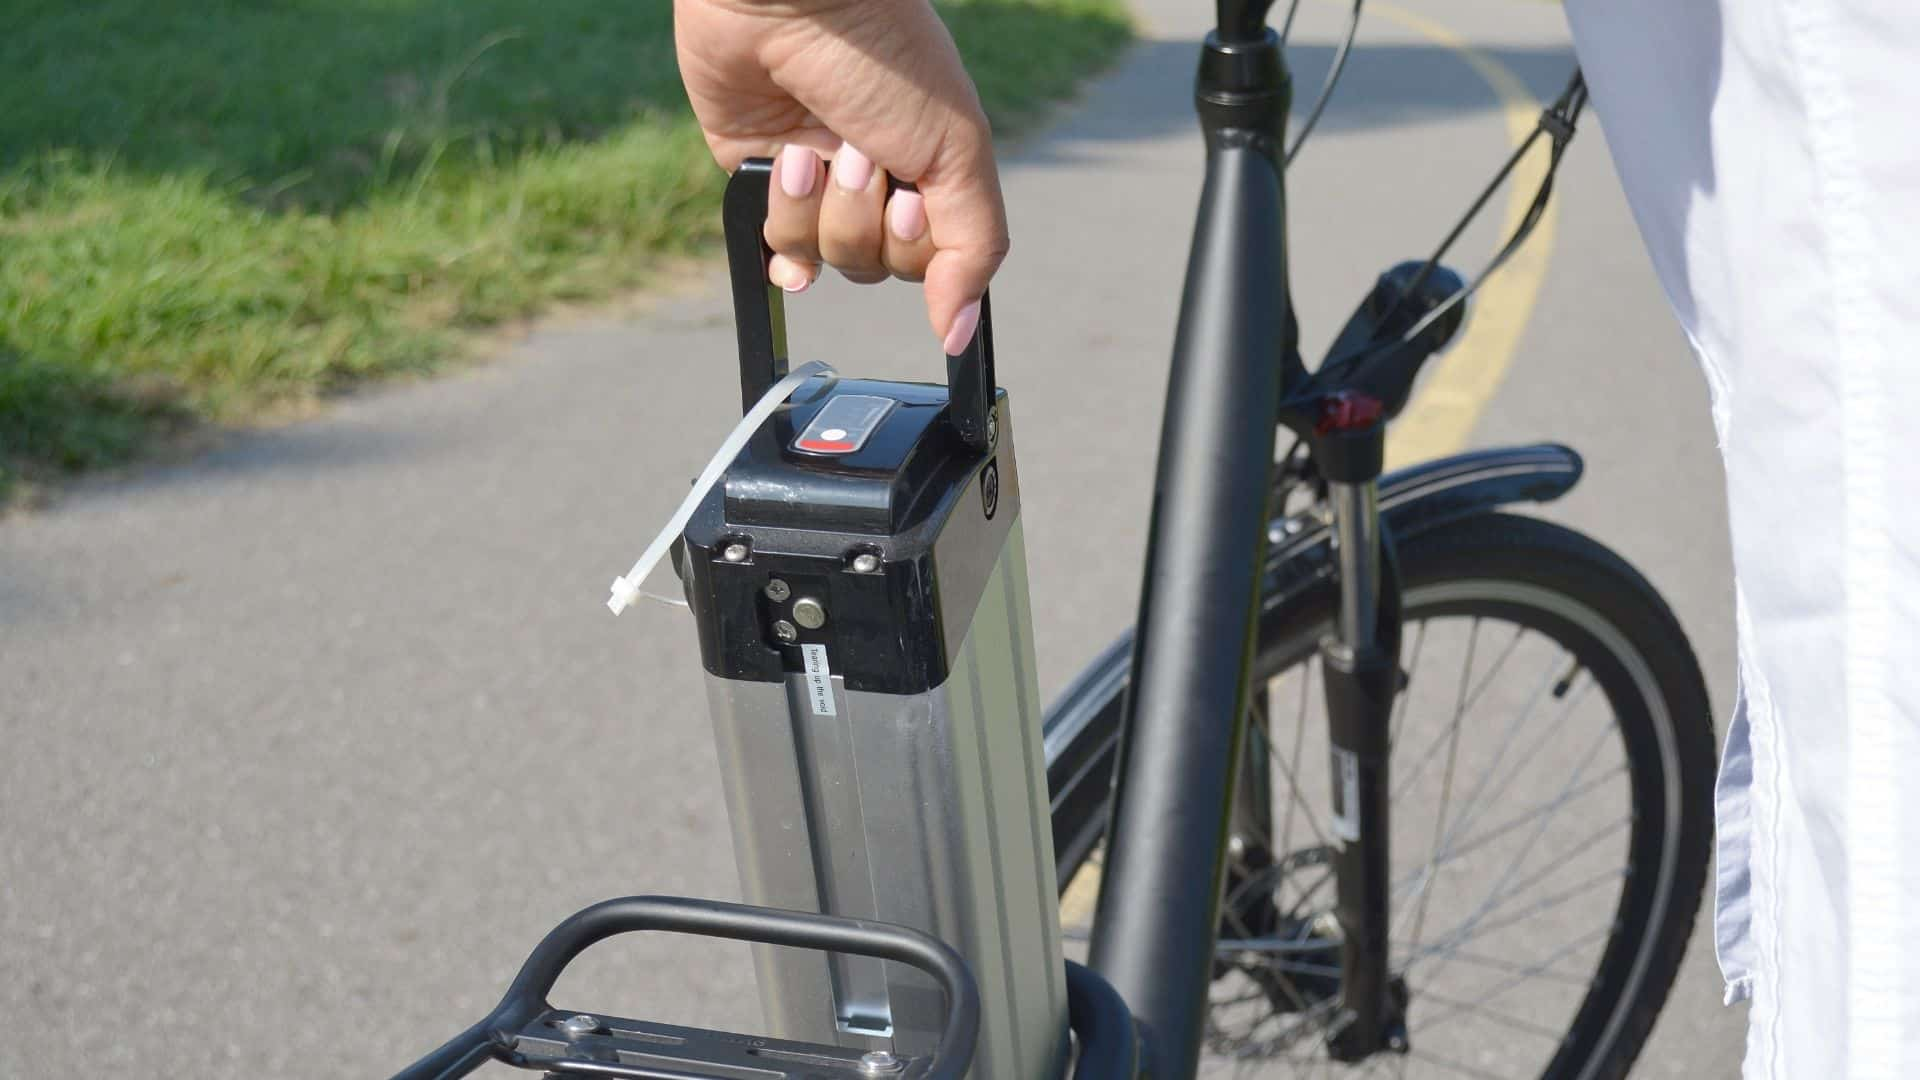 How Long Does the Battery on an Electric Bike Last?